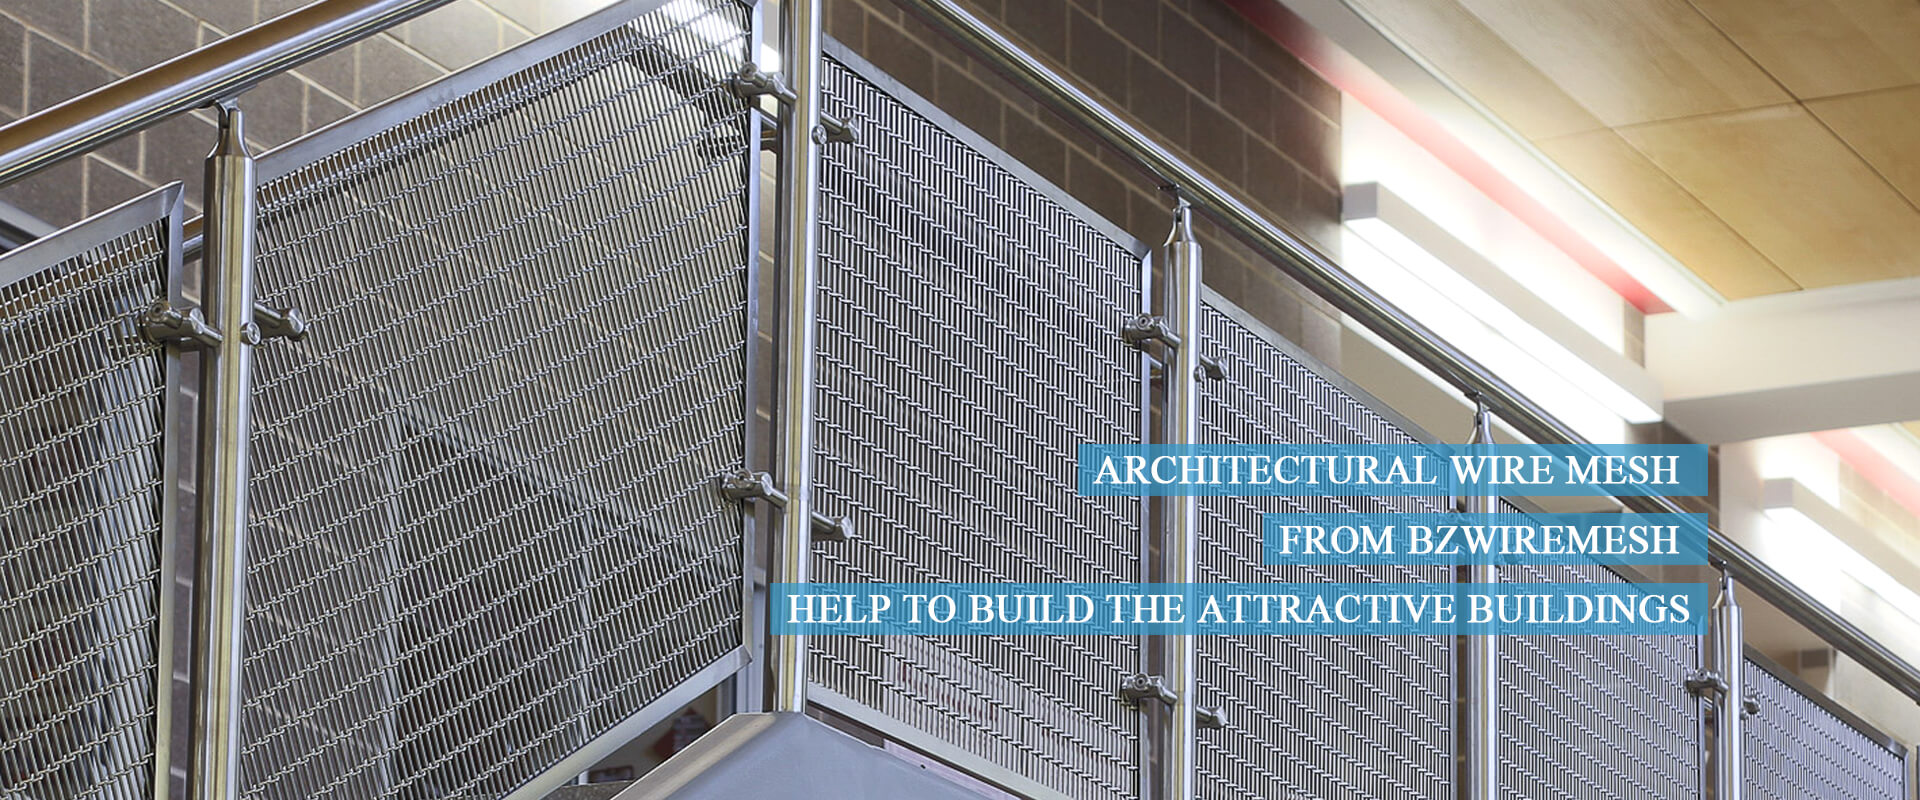 Architectural wire mesh used as handrail infills